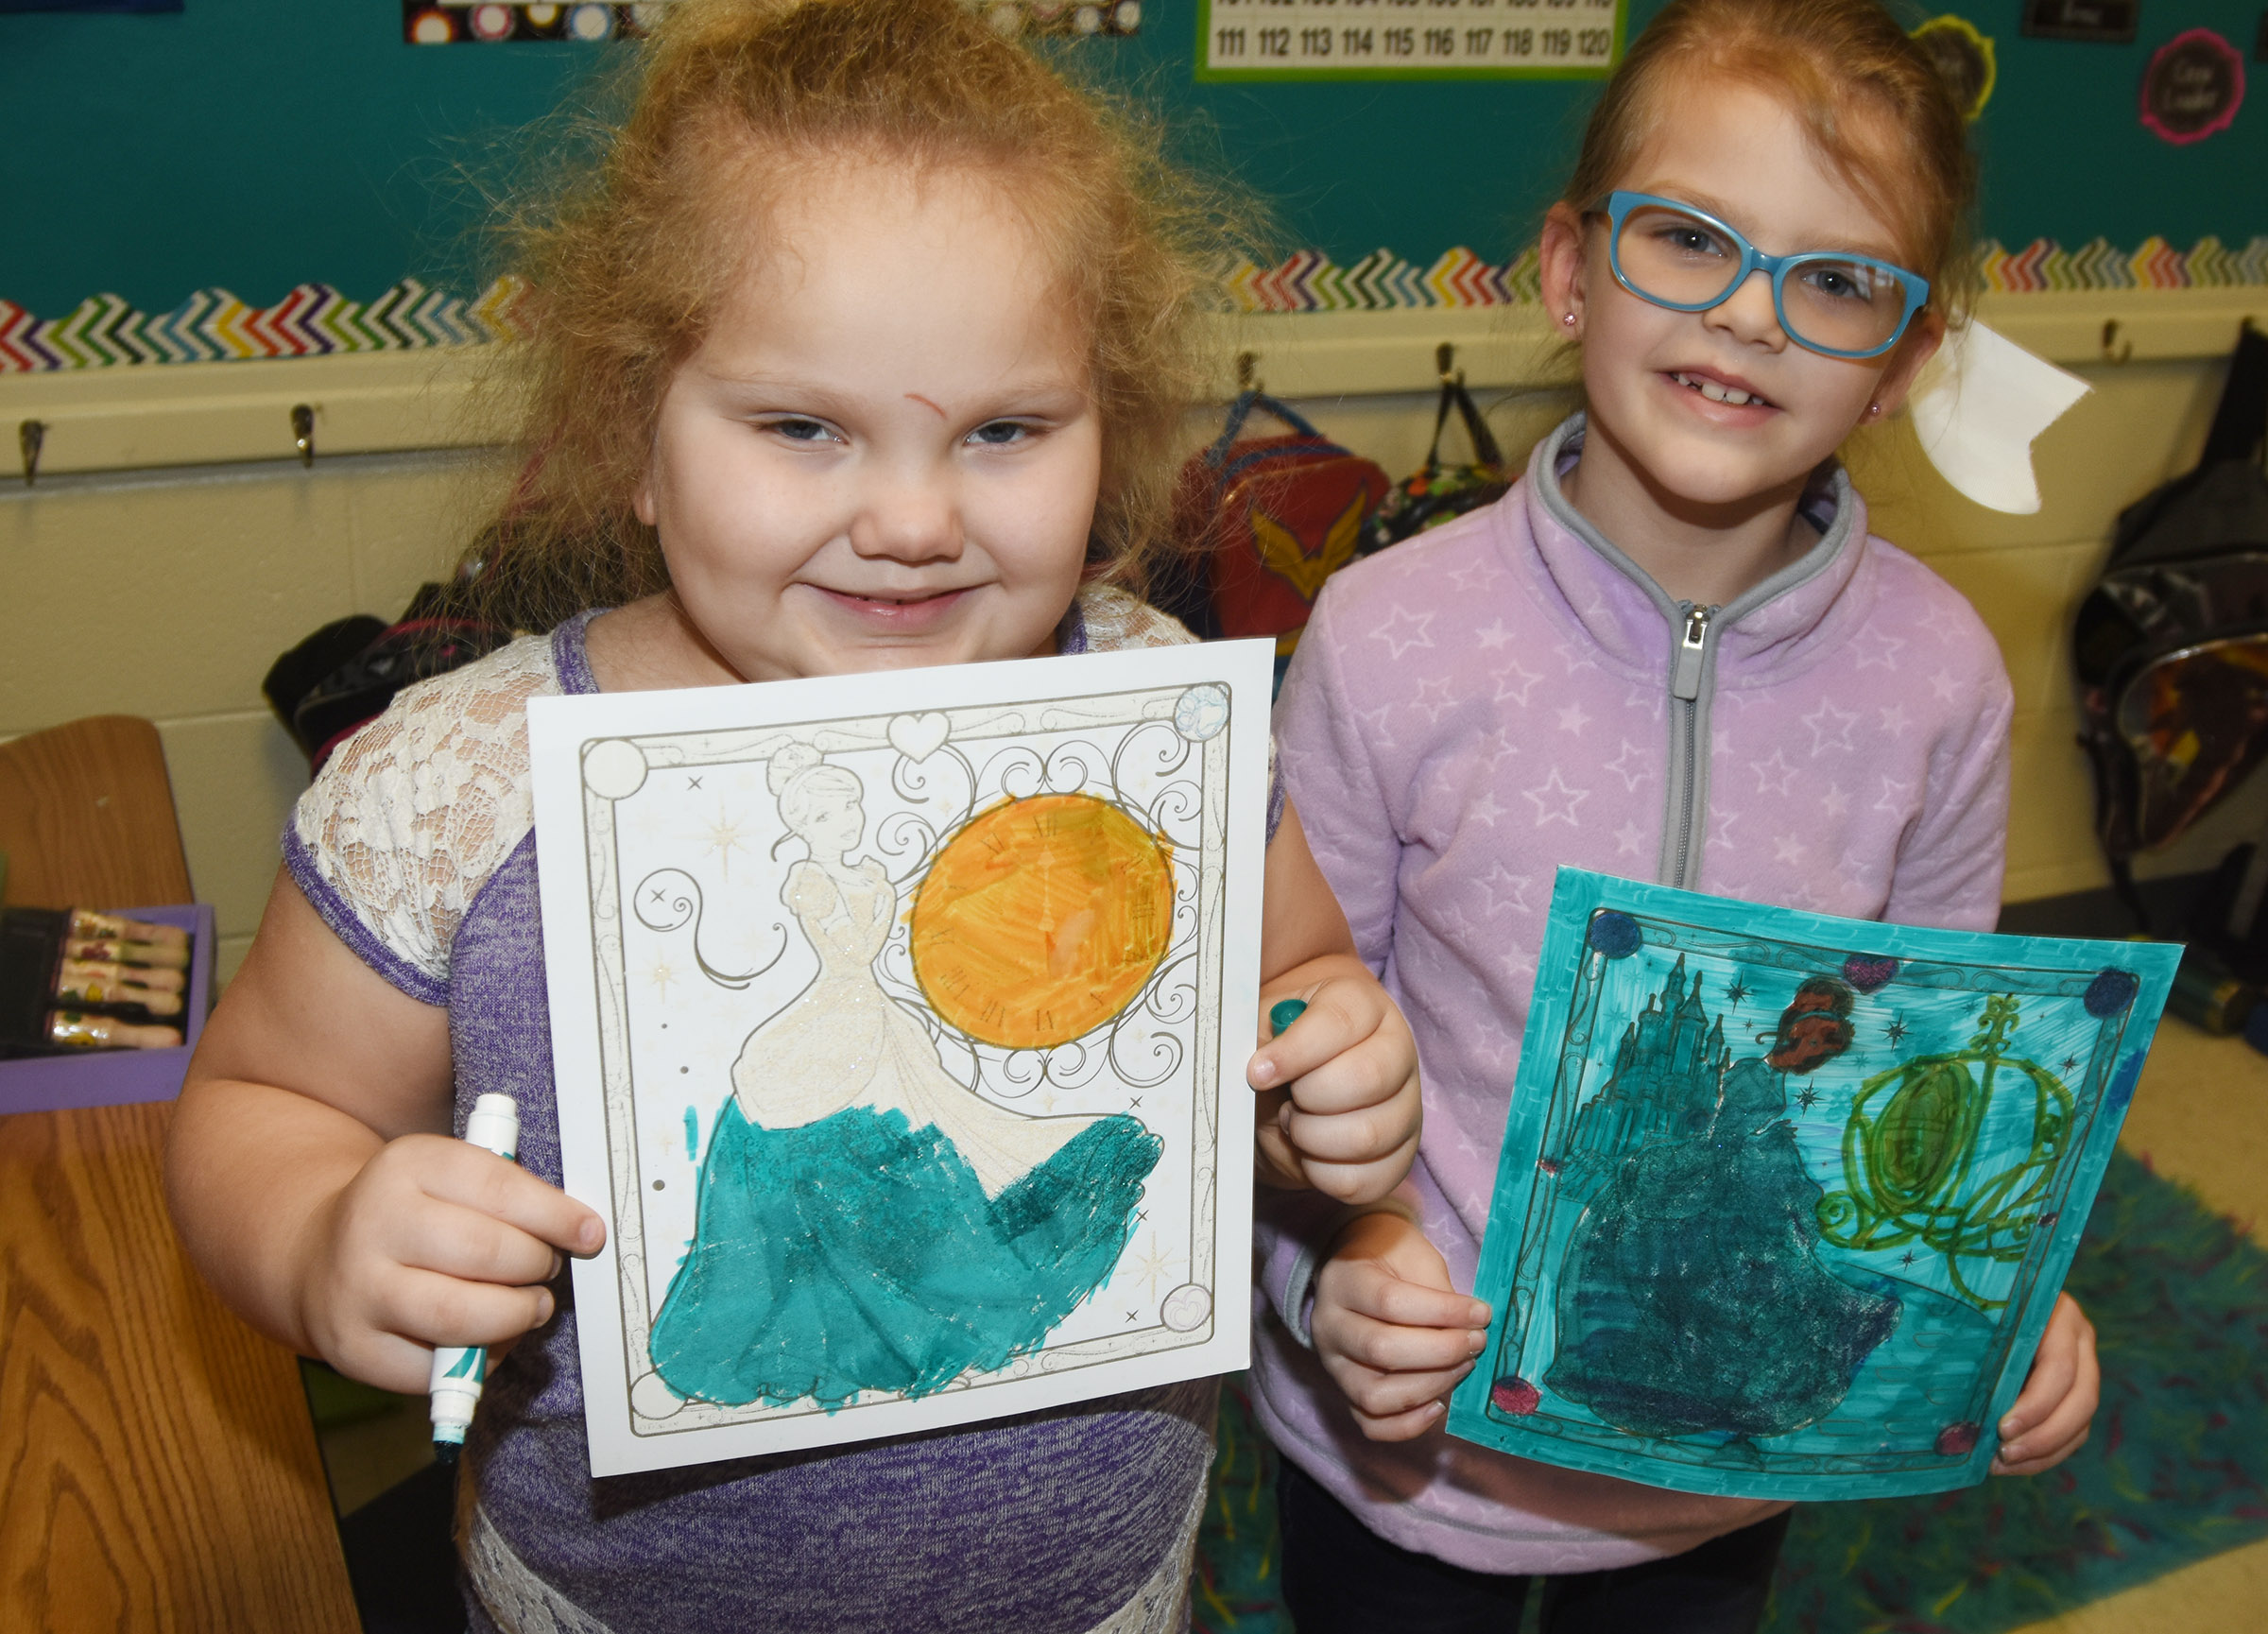 CES first-graders ReAnna Jeffries, at left, and Zoe Weddle have fun coloring together.